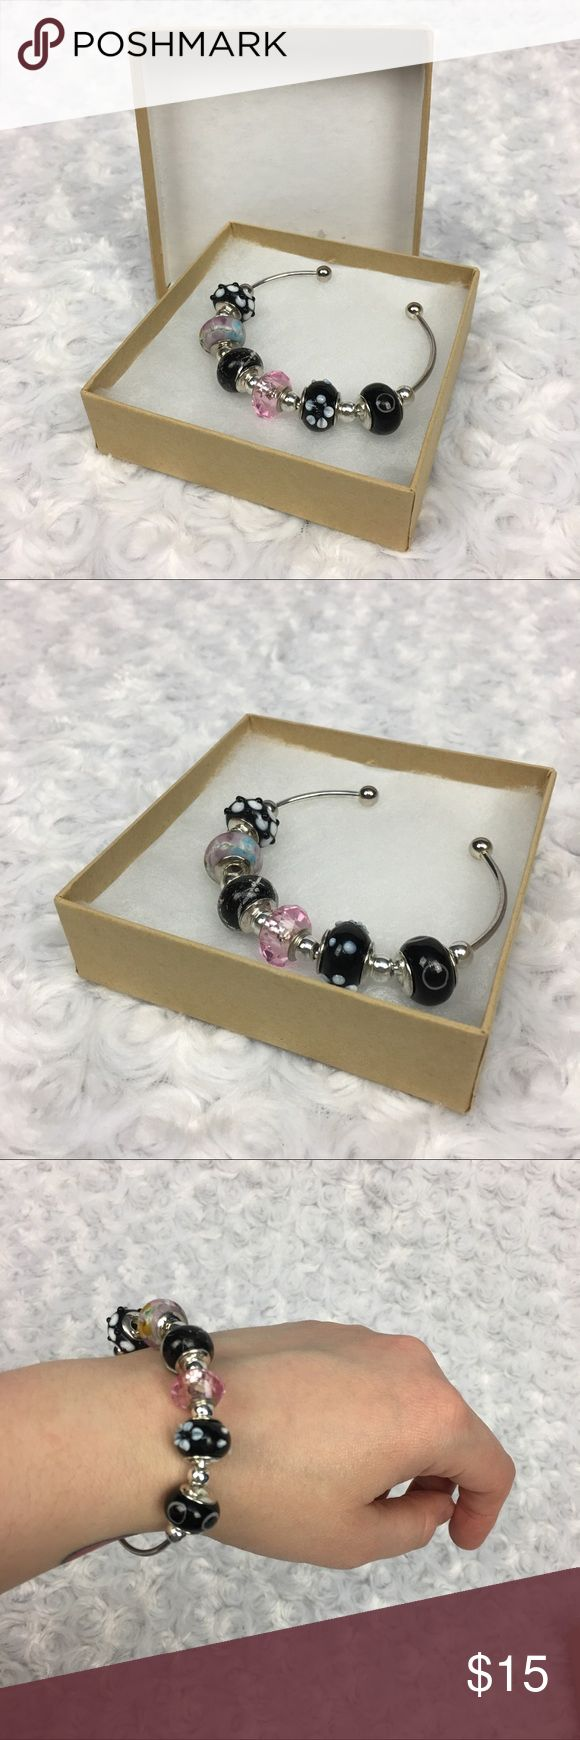 Thin Open Cuff Bracelet with Floral & Black Beads thin open cuff braclet with floral & black beads  This is handmade open cuff braclet, it has 6 larger rounded beads and 7 smaller silver beads separating the larger beads.   The cuff is slightly bendable, so you can adjust to your size!  * See photos for measurements and more details *  Please note: Colors may vary slightly due to different display screen calibration. [AA-15] Handmade Jewelry Bracelets